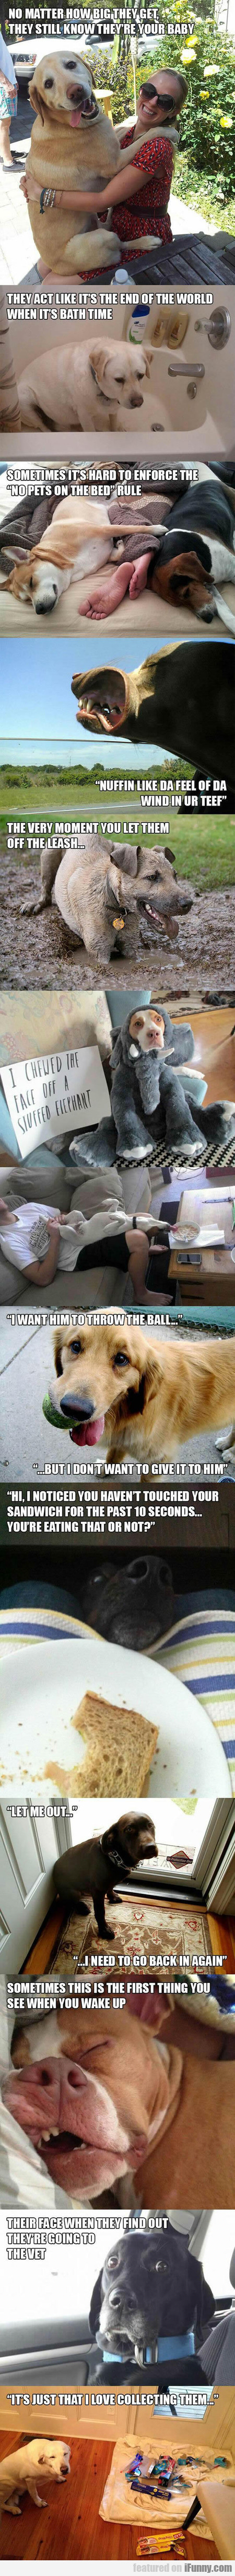 Dog Logic At Its Best